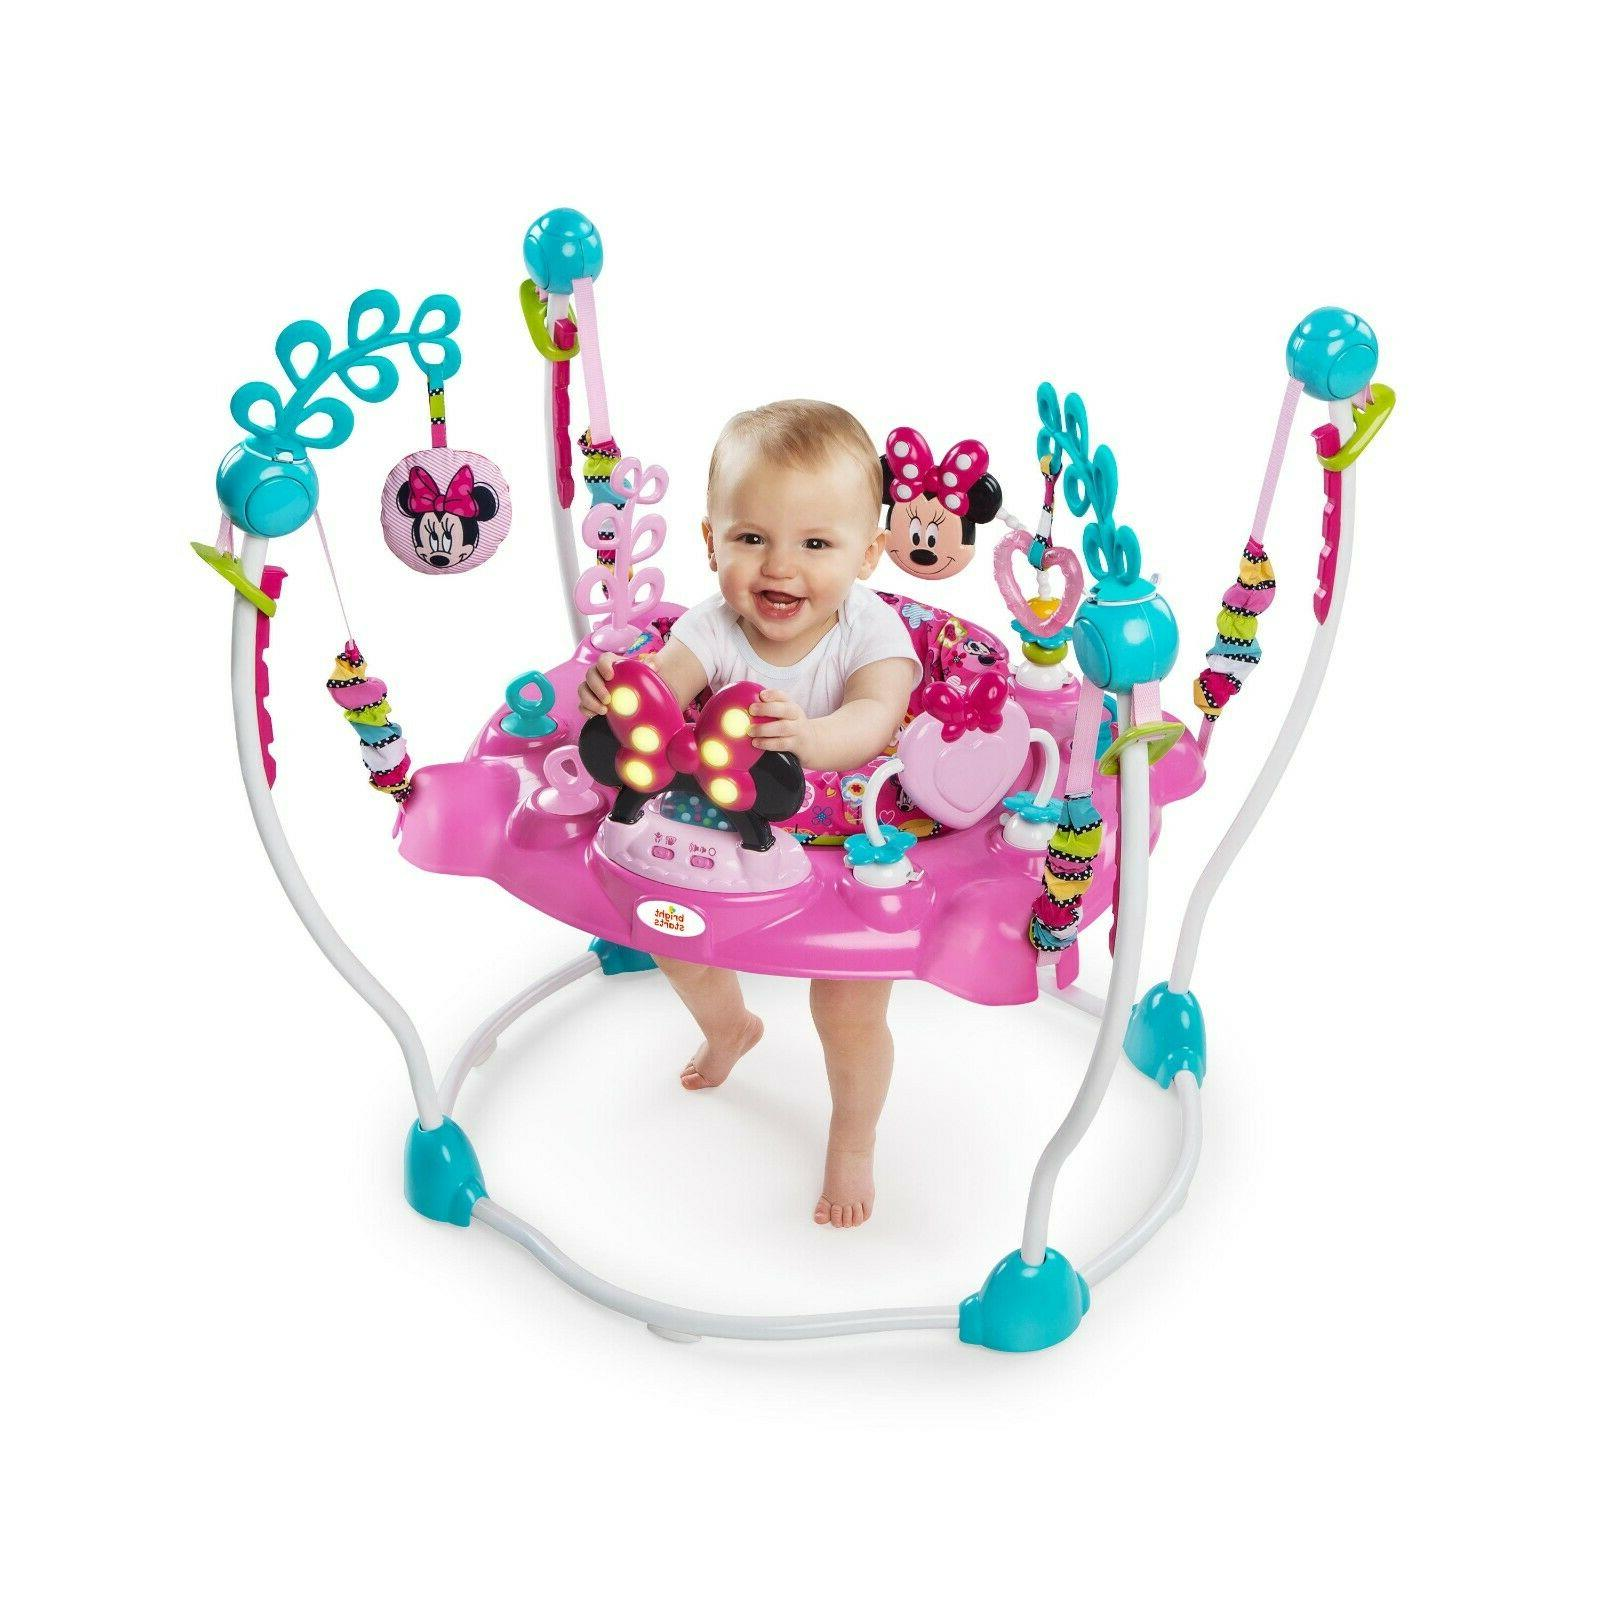 Baby Activity Bouncer Seat Play